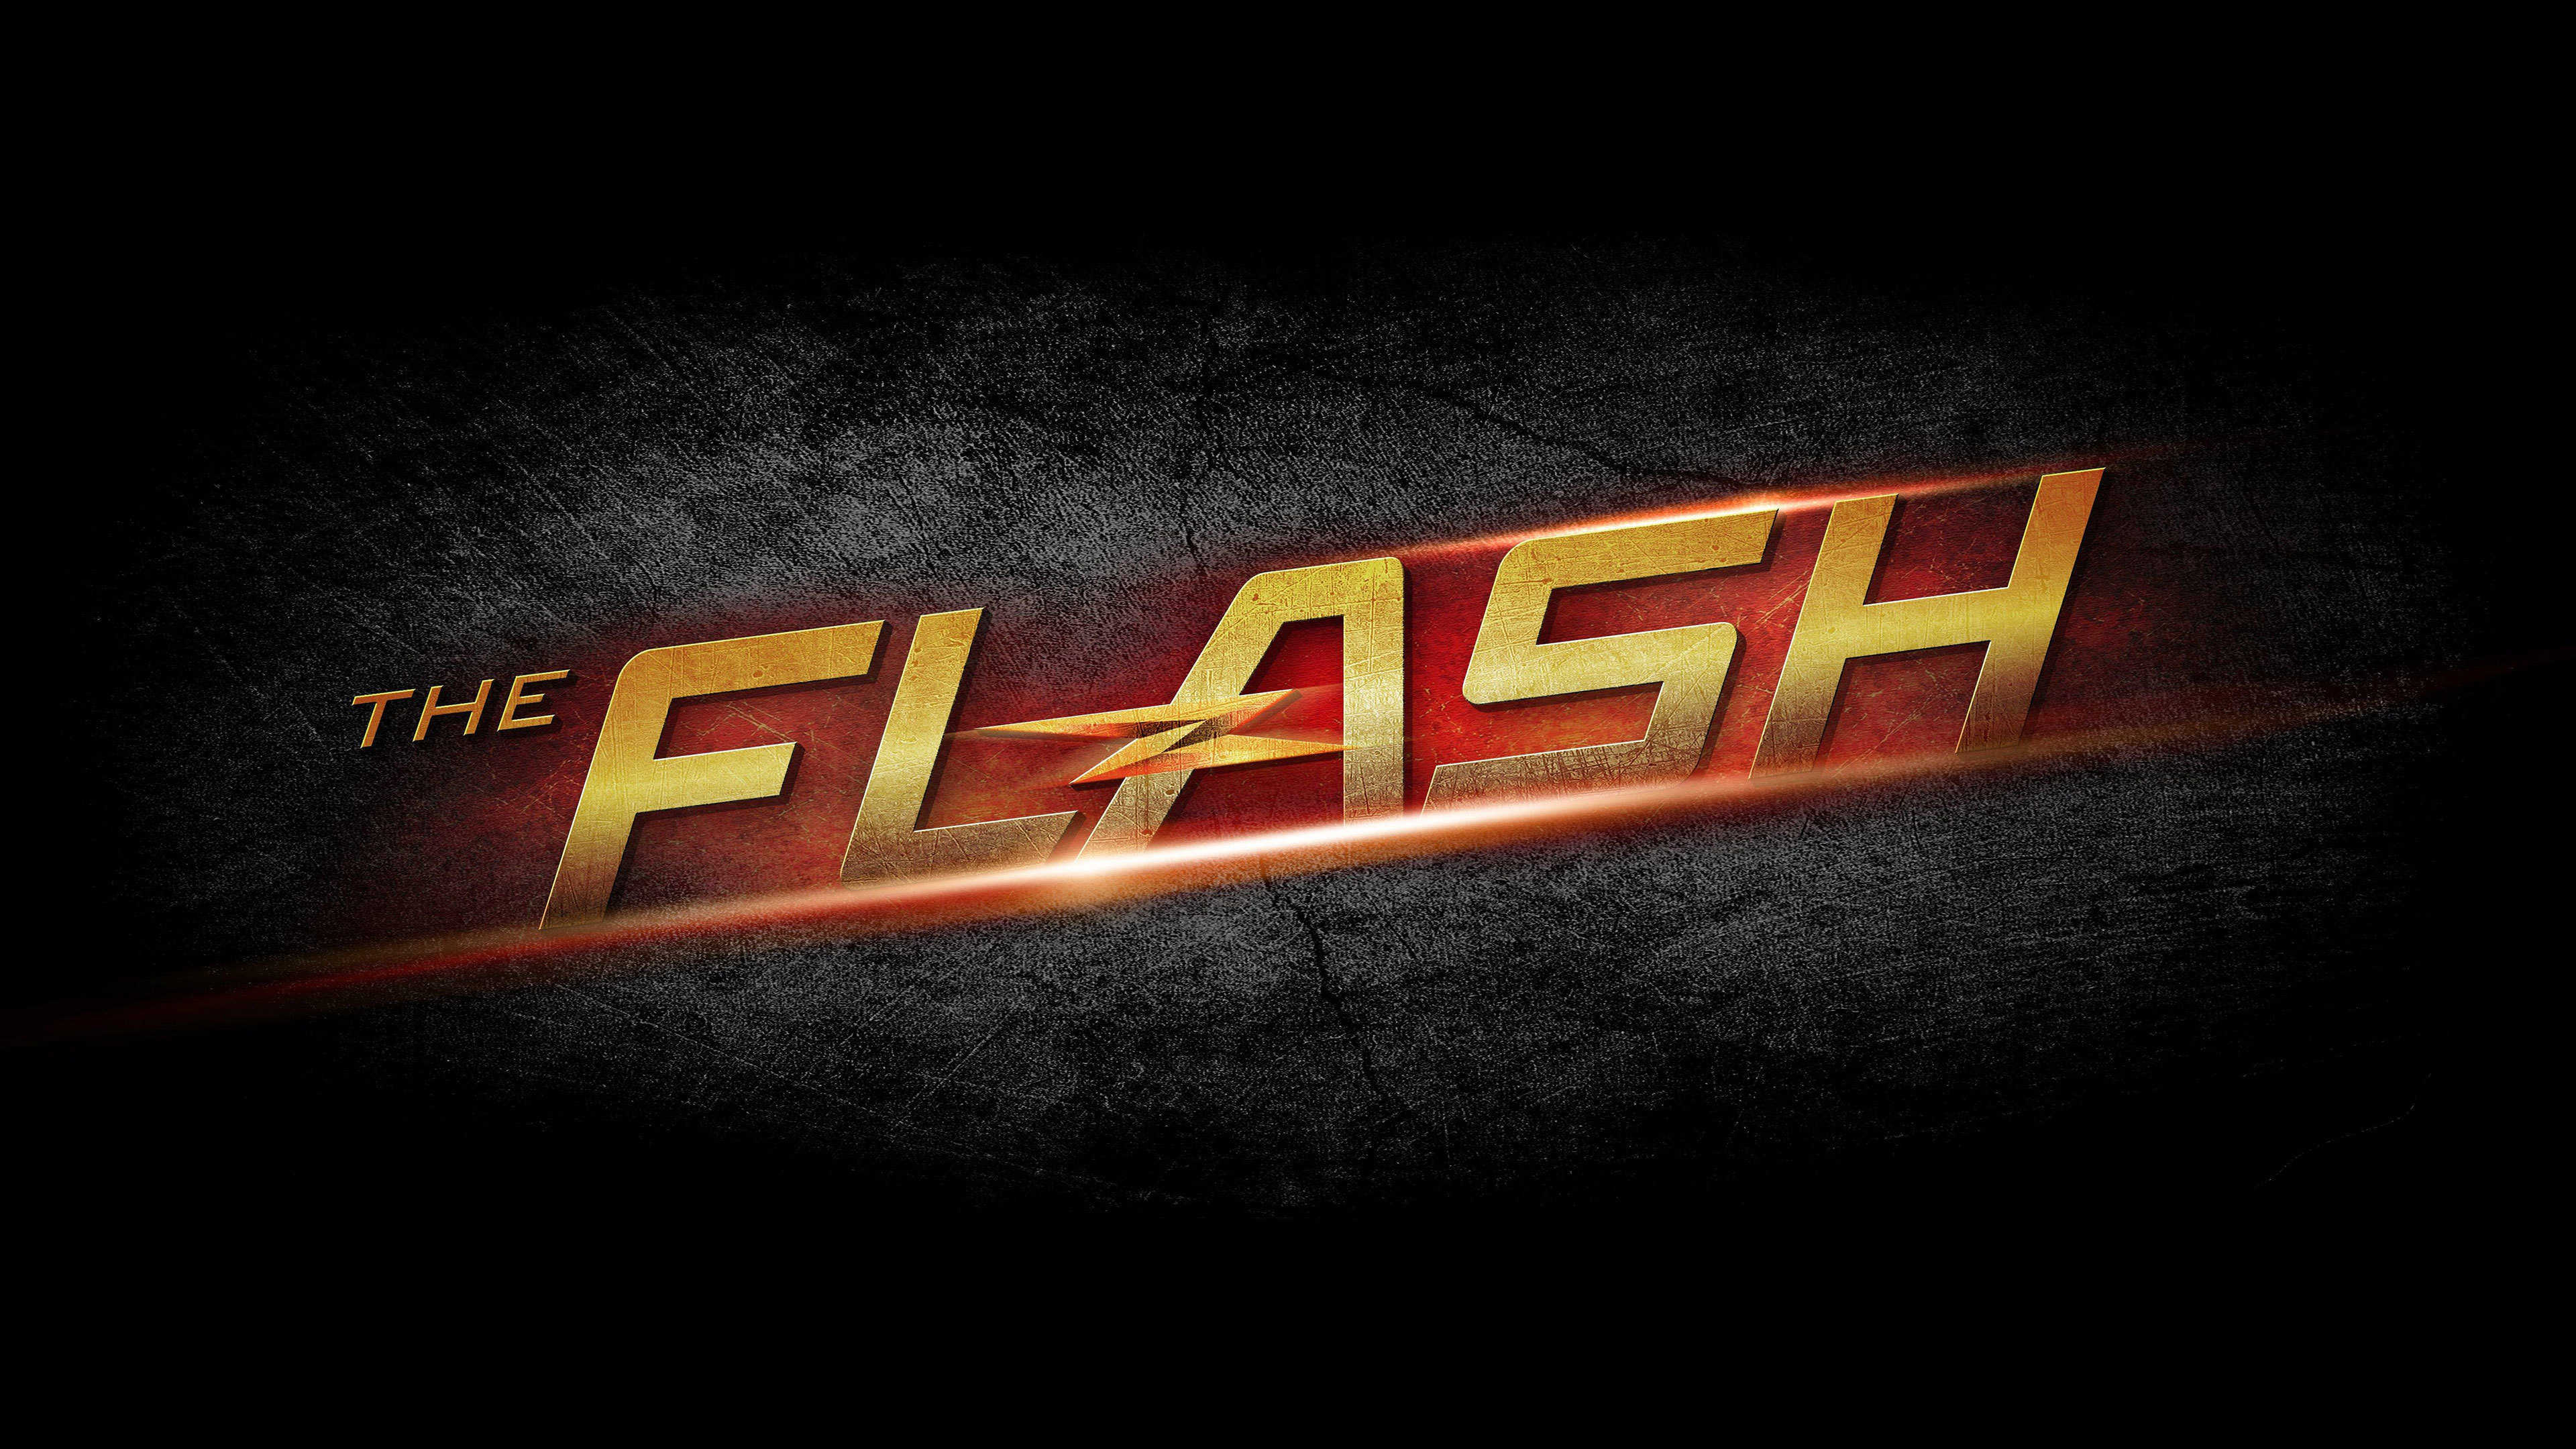 The Flash wallpaper 1 3840x2160